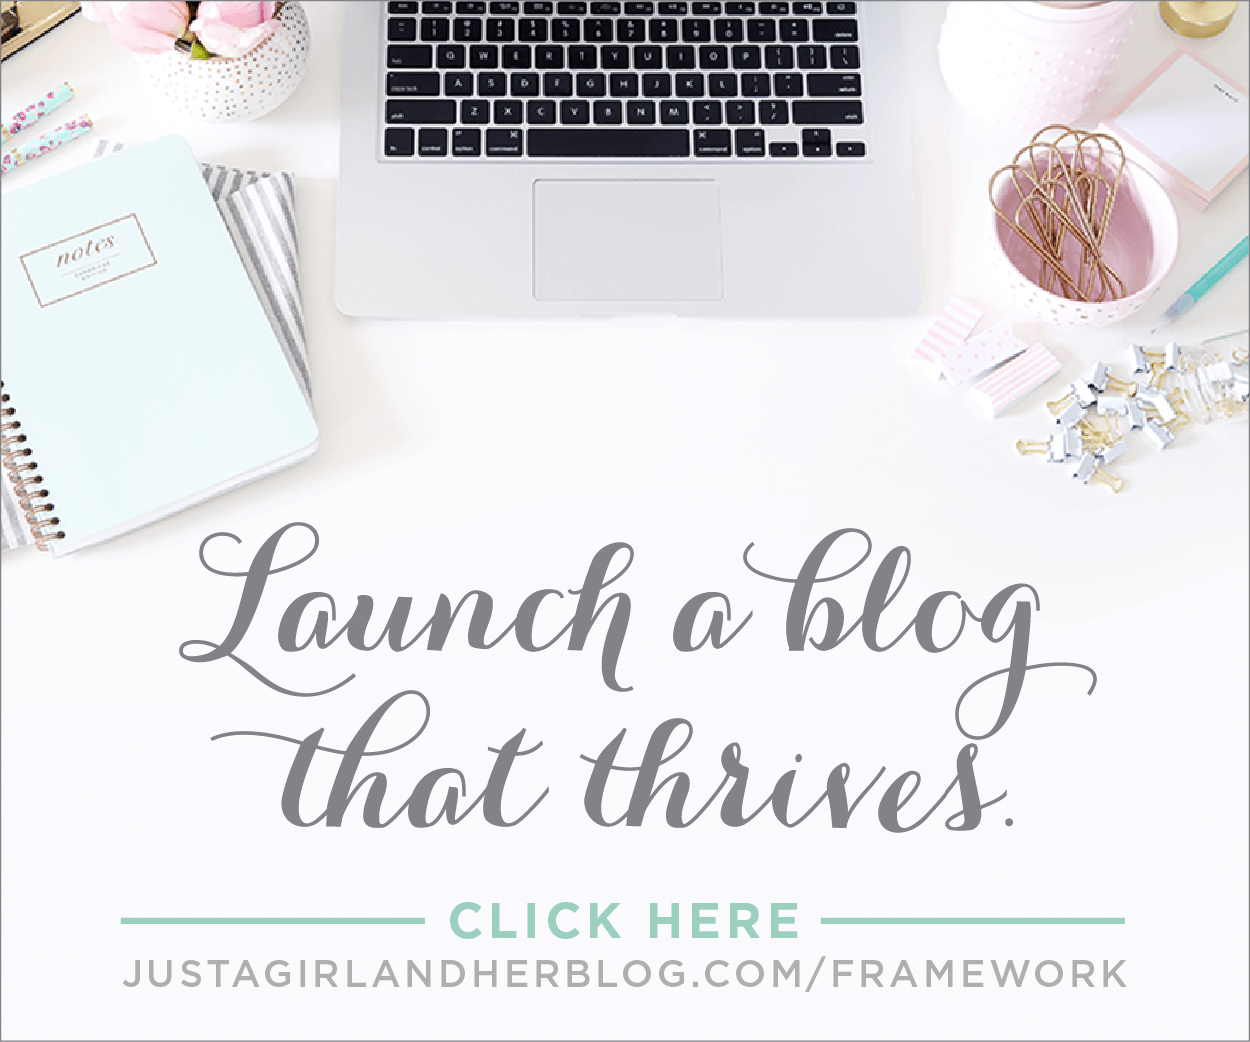 Launch a blog that thrives with Building a Framework from Abby at Just a Girl and Her Blog